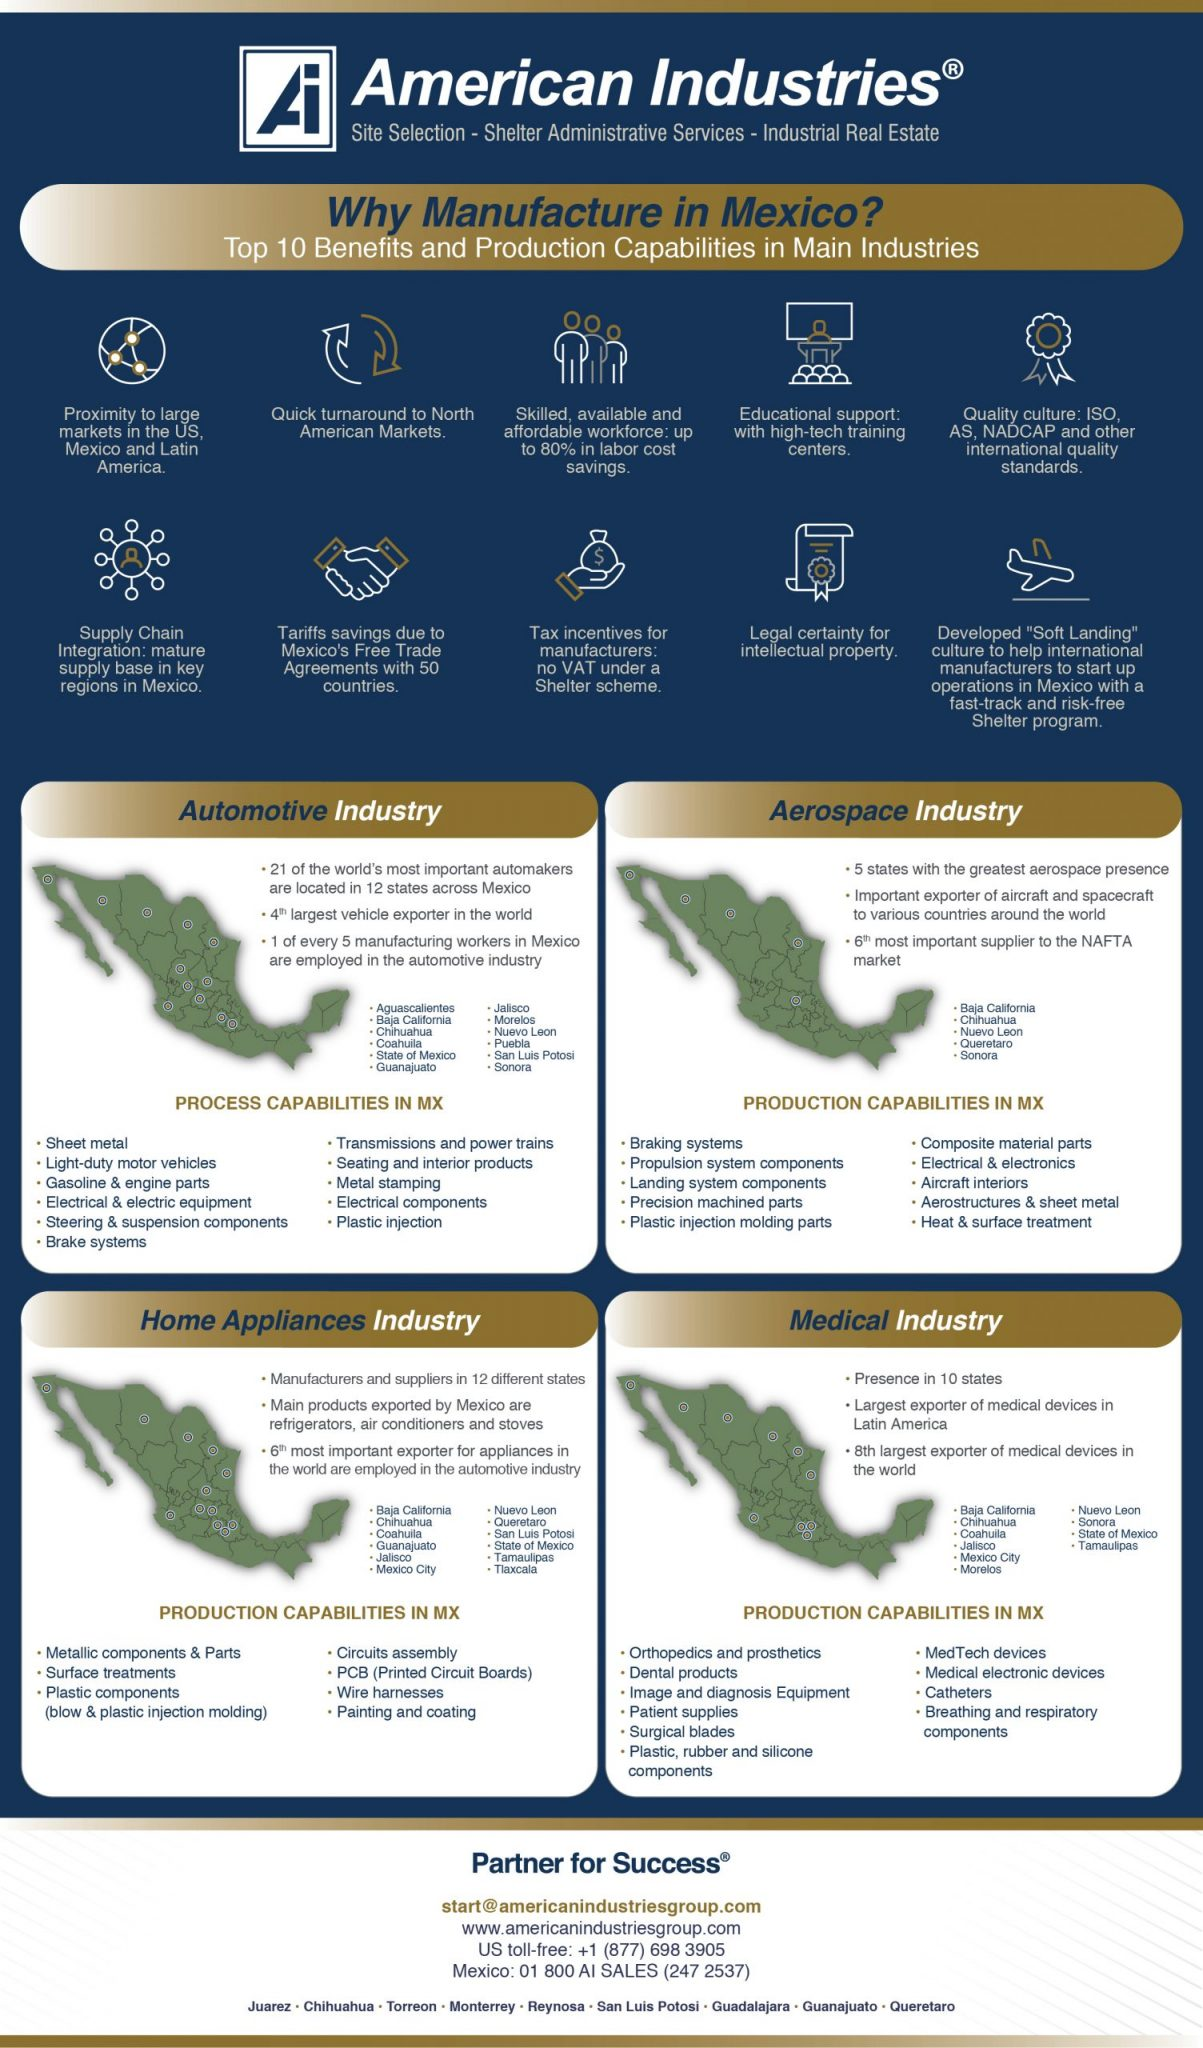 Infograìfico Mayo Azul scaled - Why manufacture in Mexico? Top 10 benefits and production capabilities in main industries